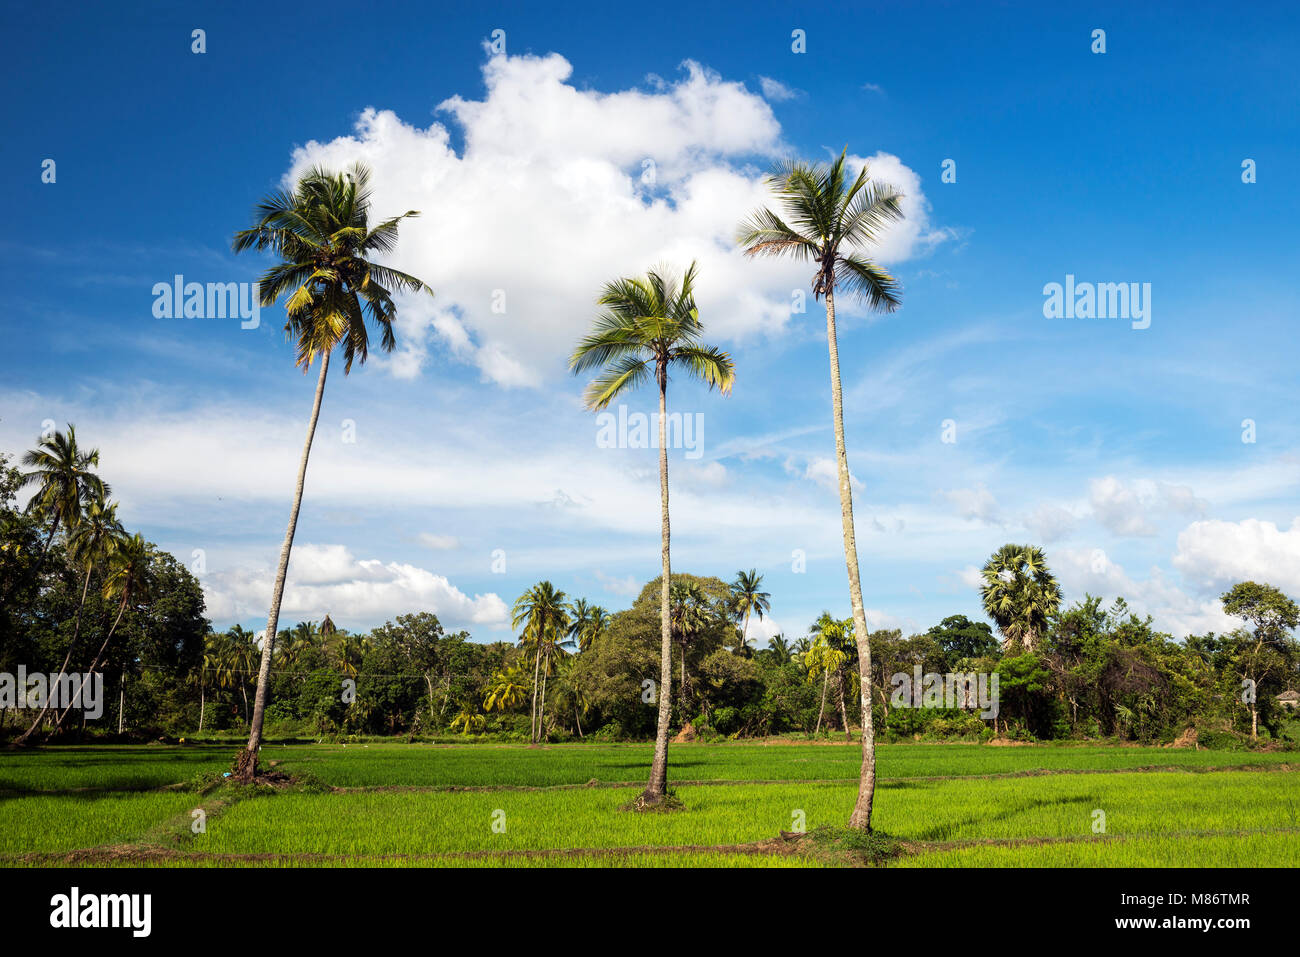 Paddy field,Avukana,North Central Province,Sri Lanka Stock Photo